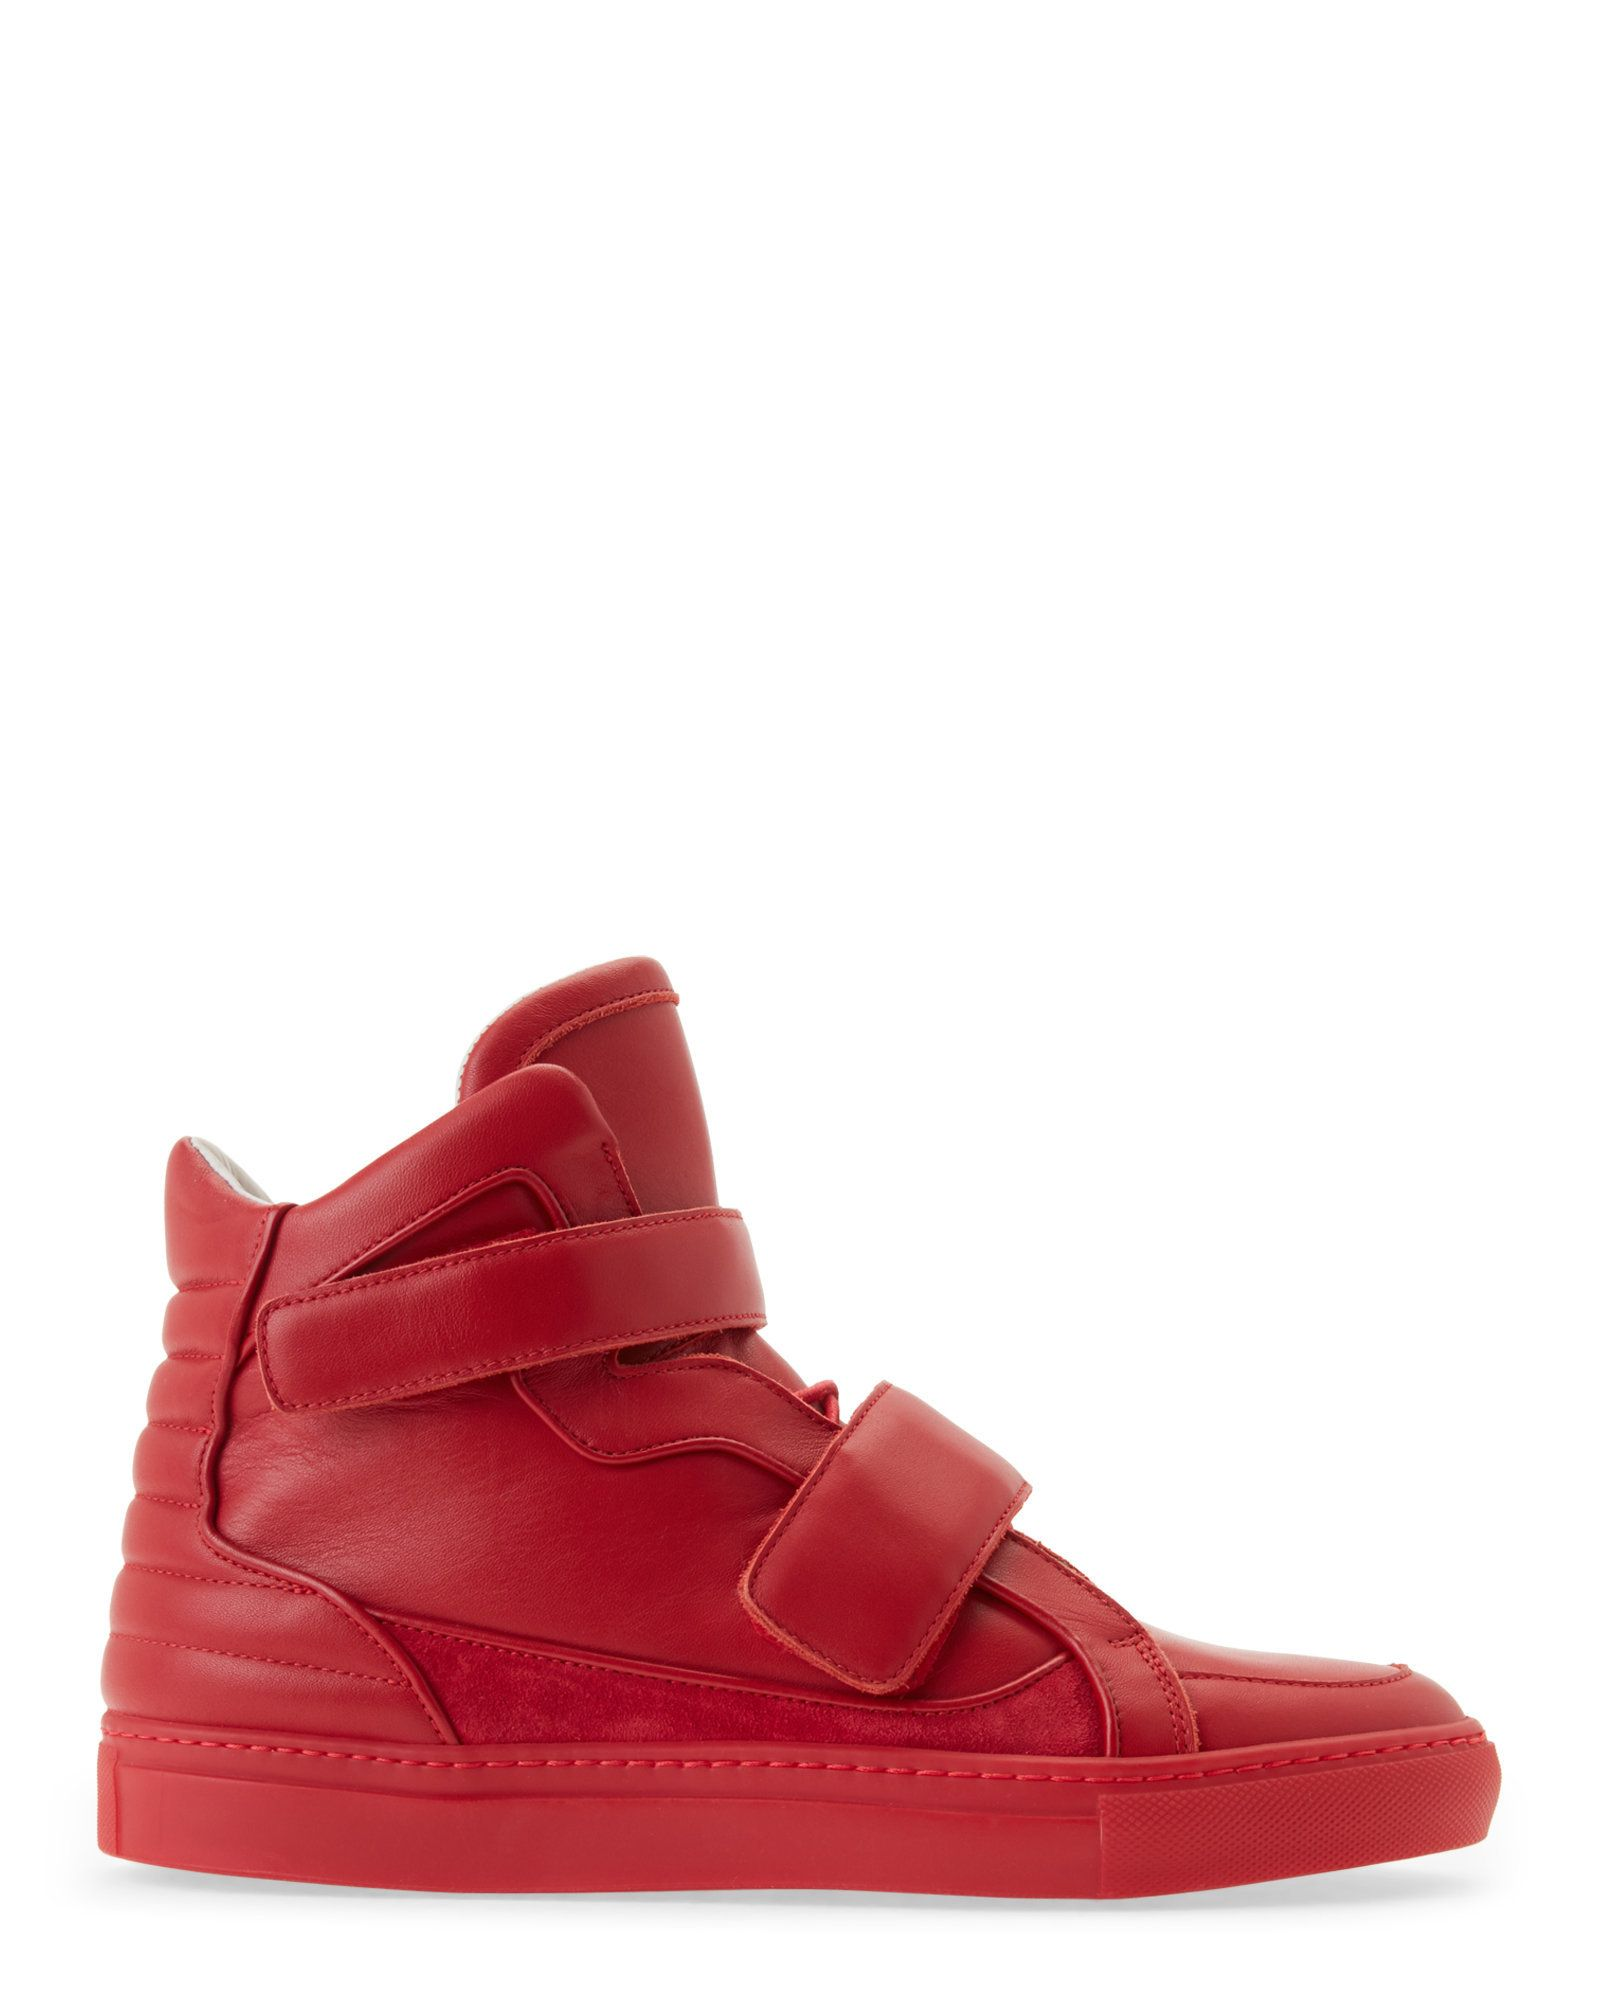 a19f2fab21 Red High Top Velcro Leather Sneakers | 厚底(滑板) | Sneakers ...